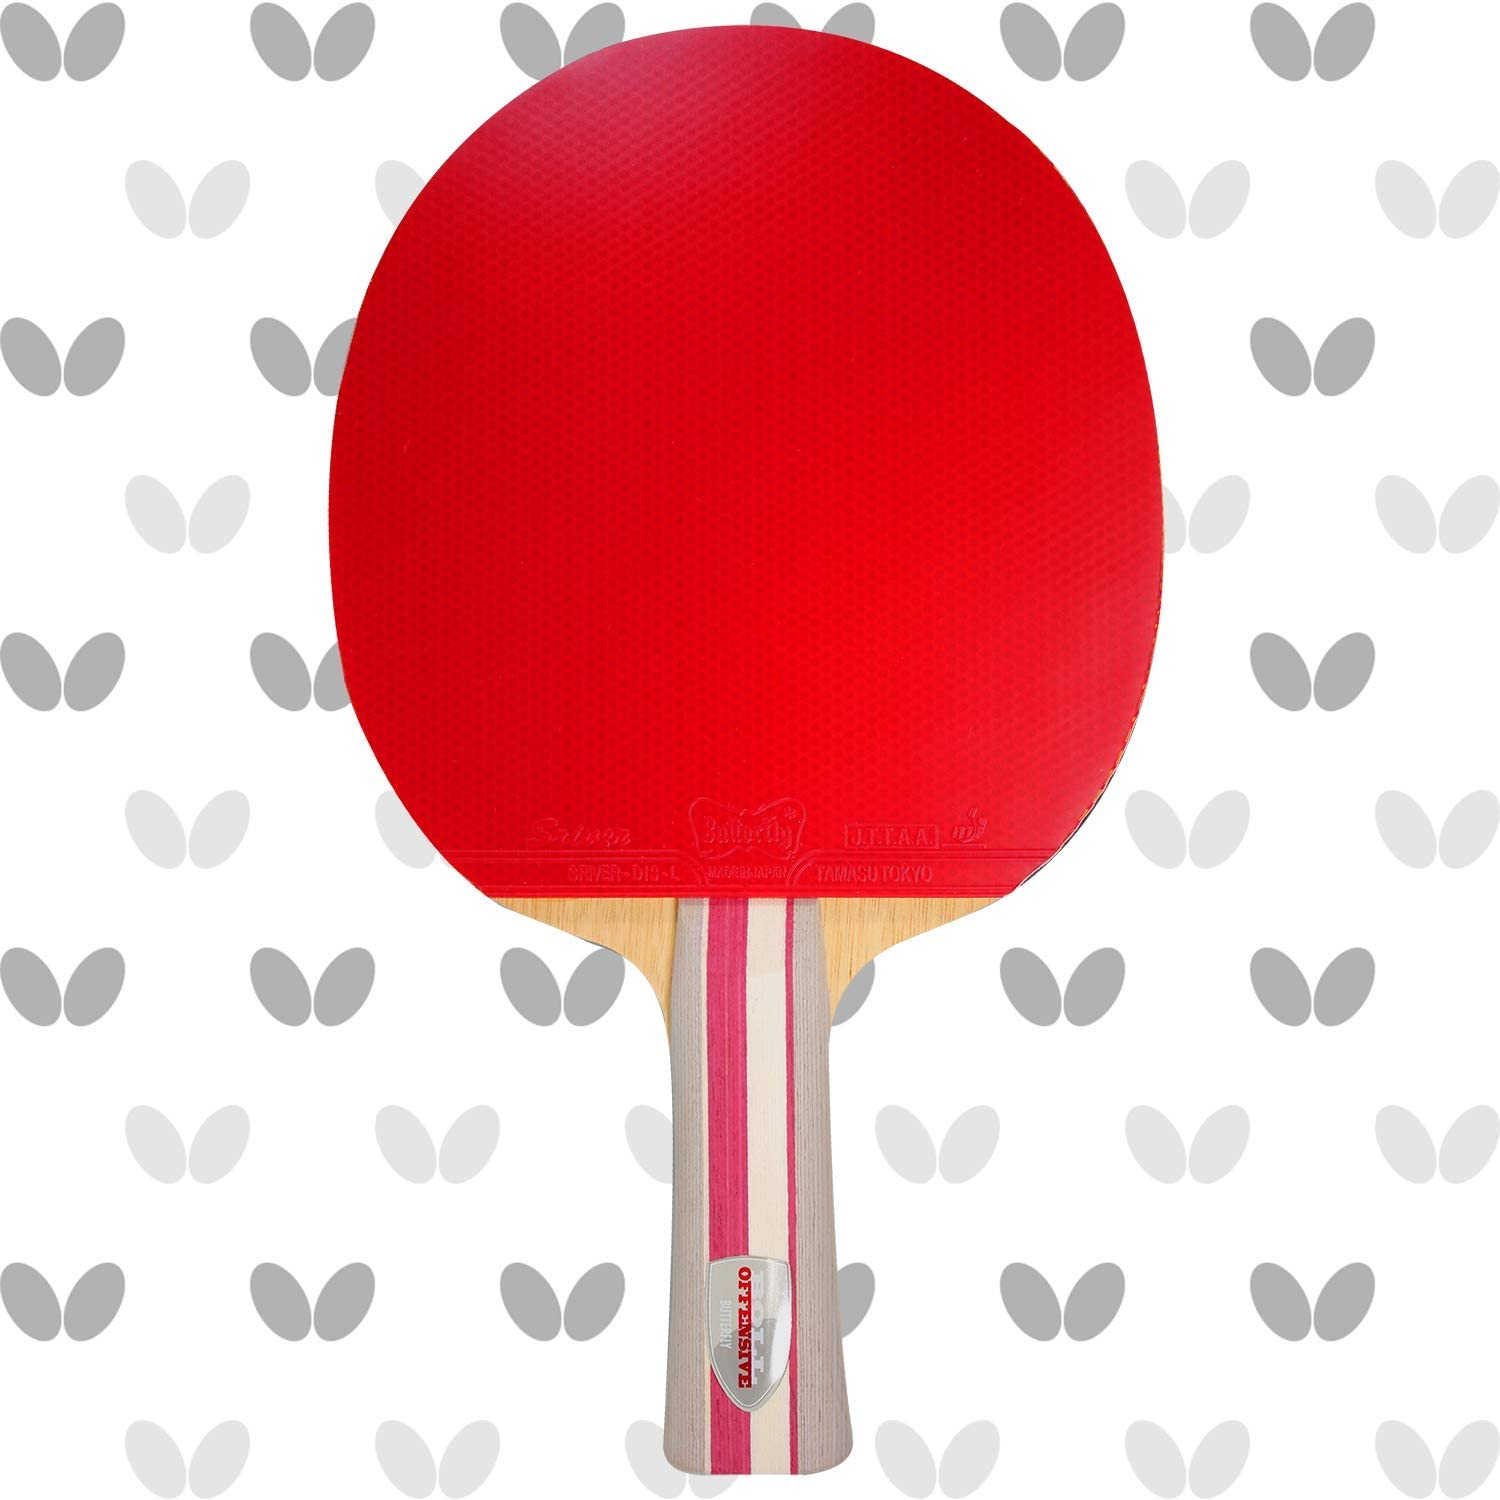 Butterfly Boll Offensive Blade & Sriver Rubber Shakehand Table Tennis Racket - Pro-Line Series - Offensive-Minded Racket for a Well-Balanced Allround Attack - Recommended For Advanced Level Players